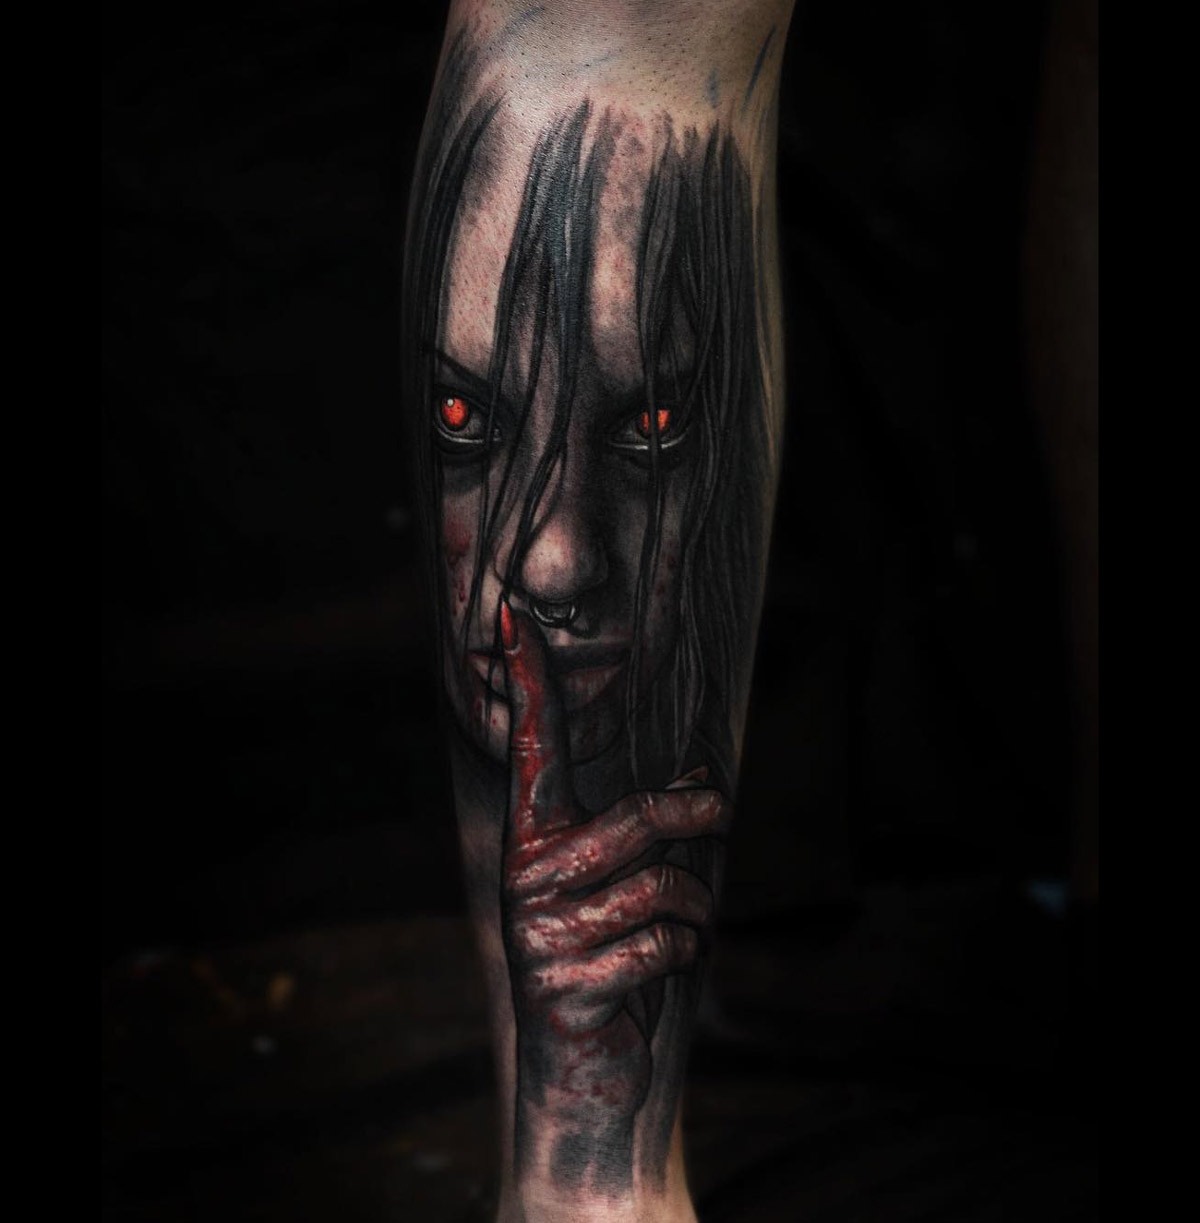 Tattoo Woman Demonic: Devil Girl Tattoo With Glowing Eyes